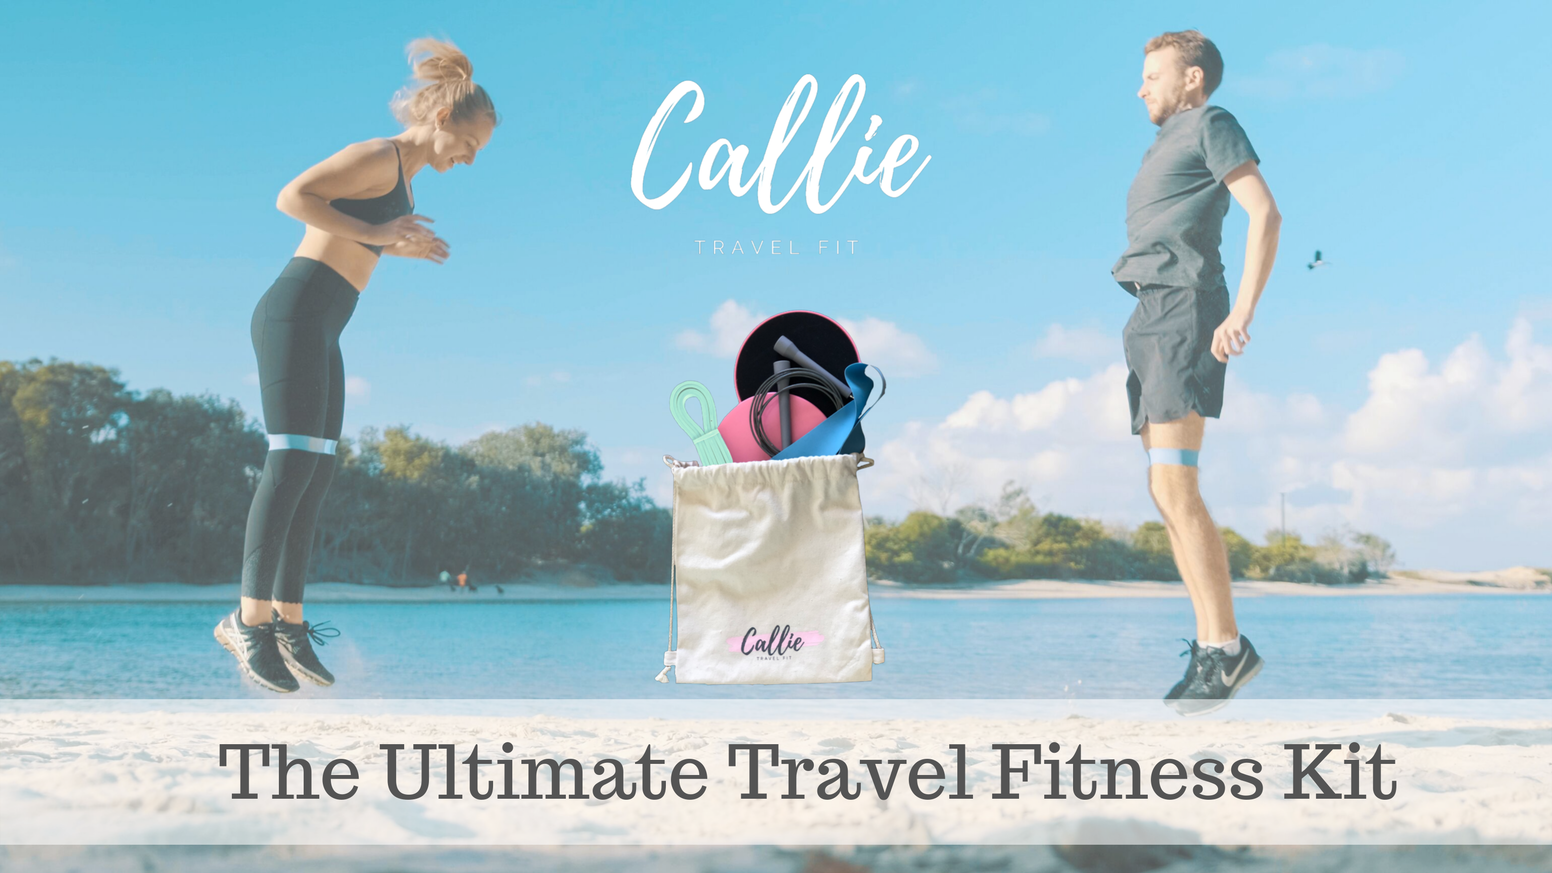 A lightweight beautifully designed travel fitness kit that lets you workout anywhere.